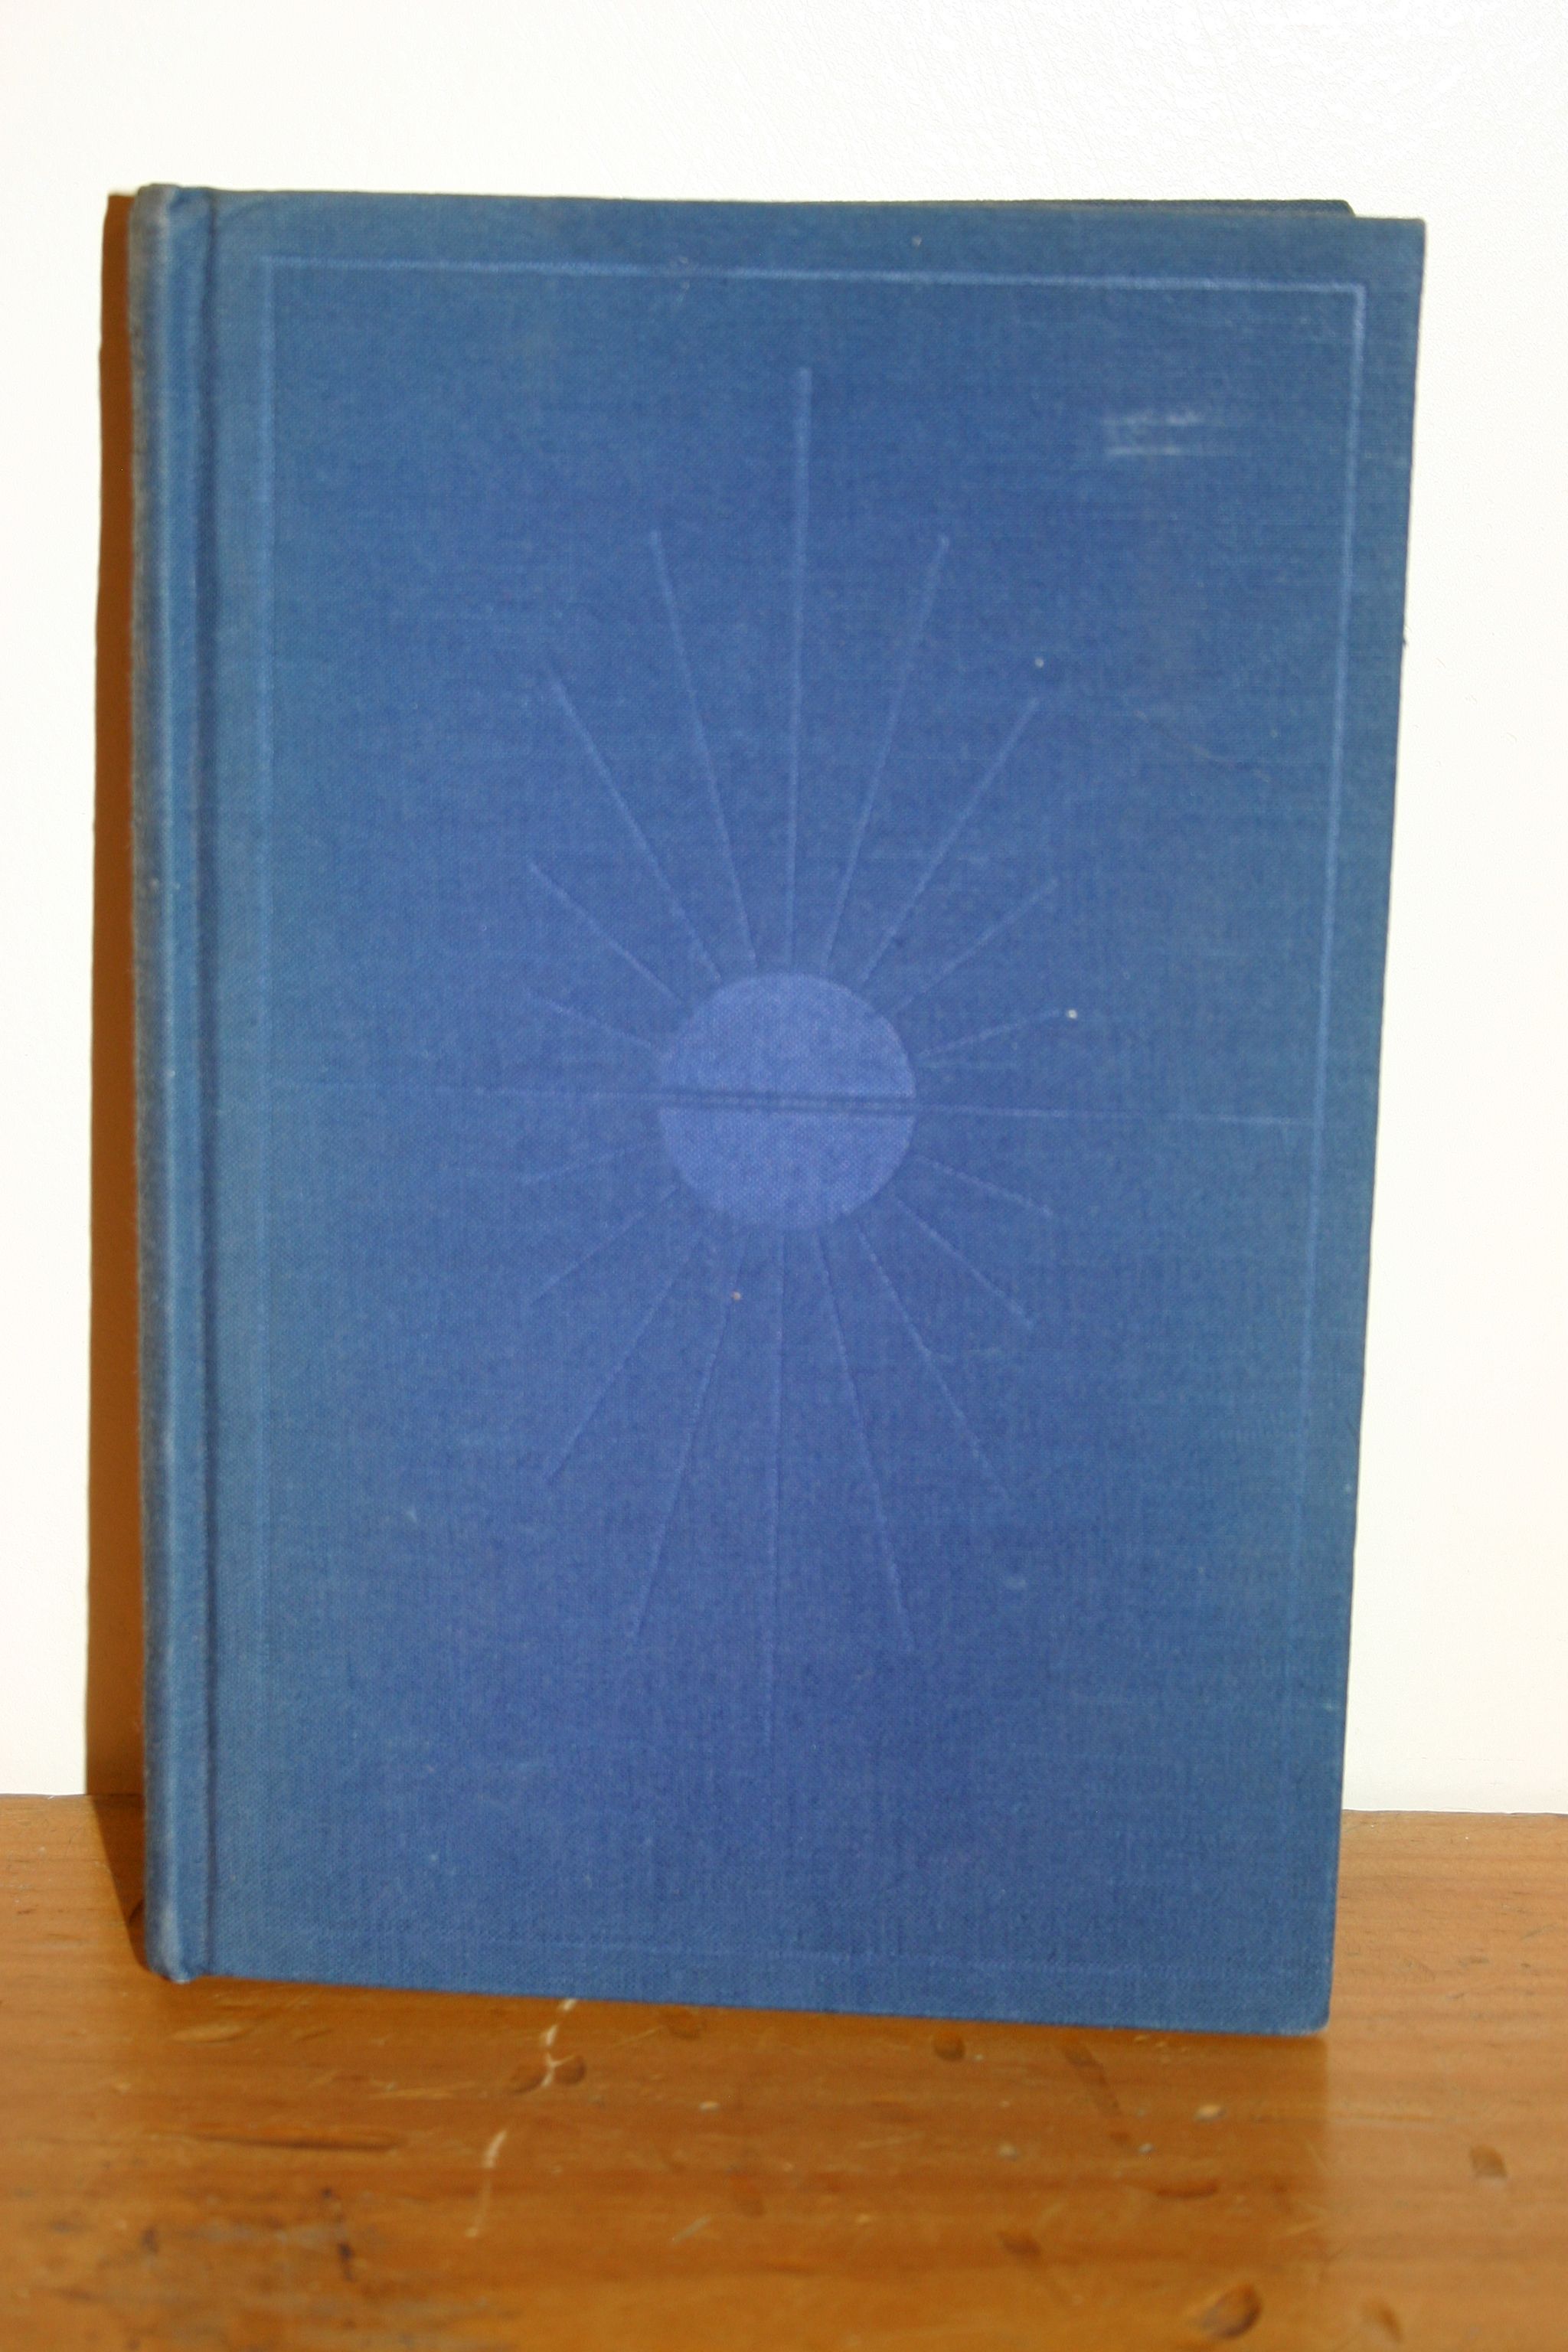 BOOK - AMERICAN INDIAN - BLACKFOOT - THE SUN GOD'S CHILDREN, 1ST ED  1930  by Schultz and Donaldson